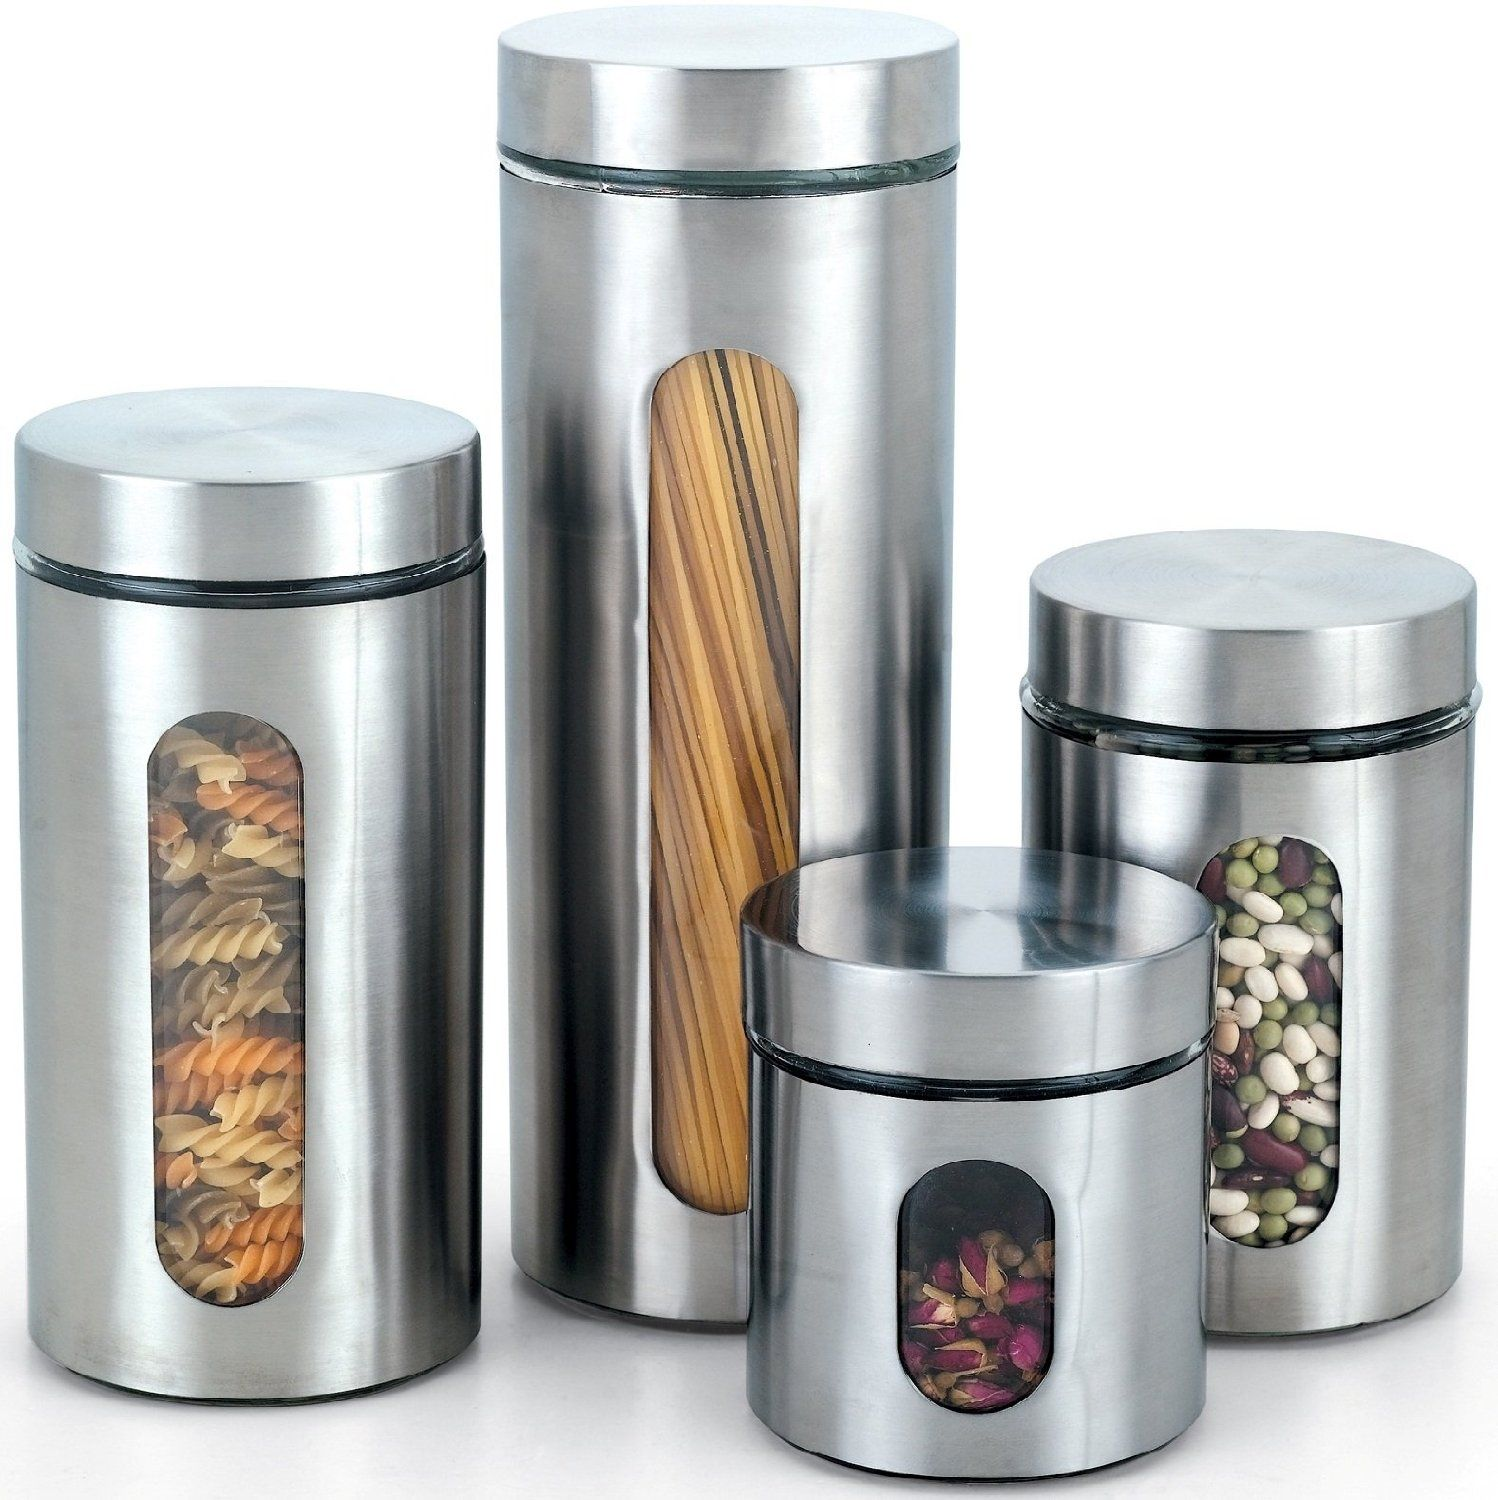 Glass kitchen canisters - Glass Kitchen Canister With Stainless Window Set 4 Piece Cook N Home